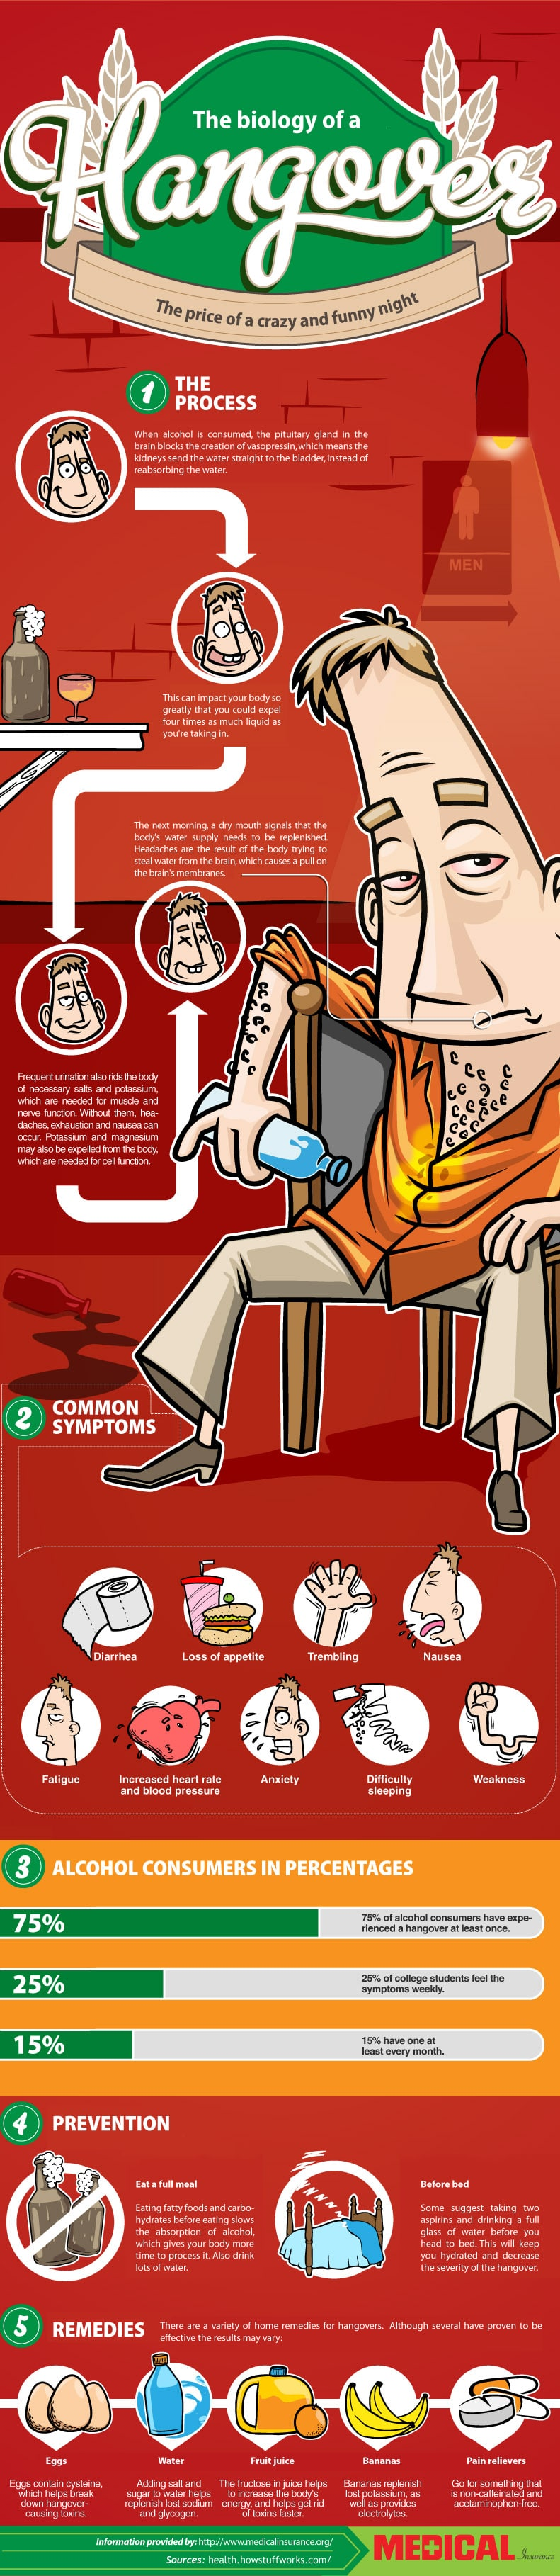 Biology Of A Hangover & How To Prevent It [Infographic]